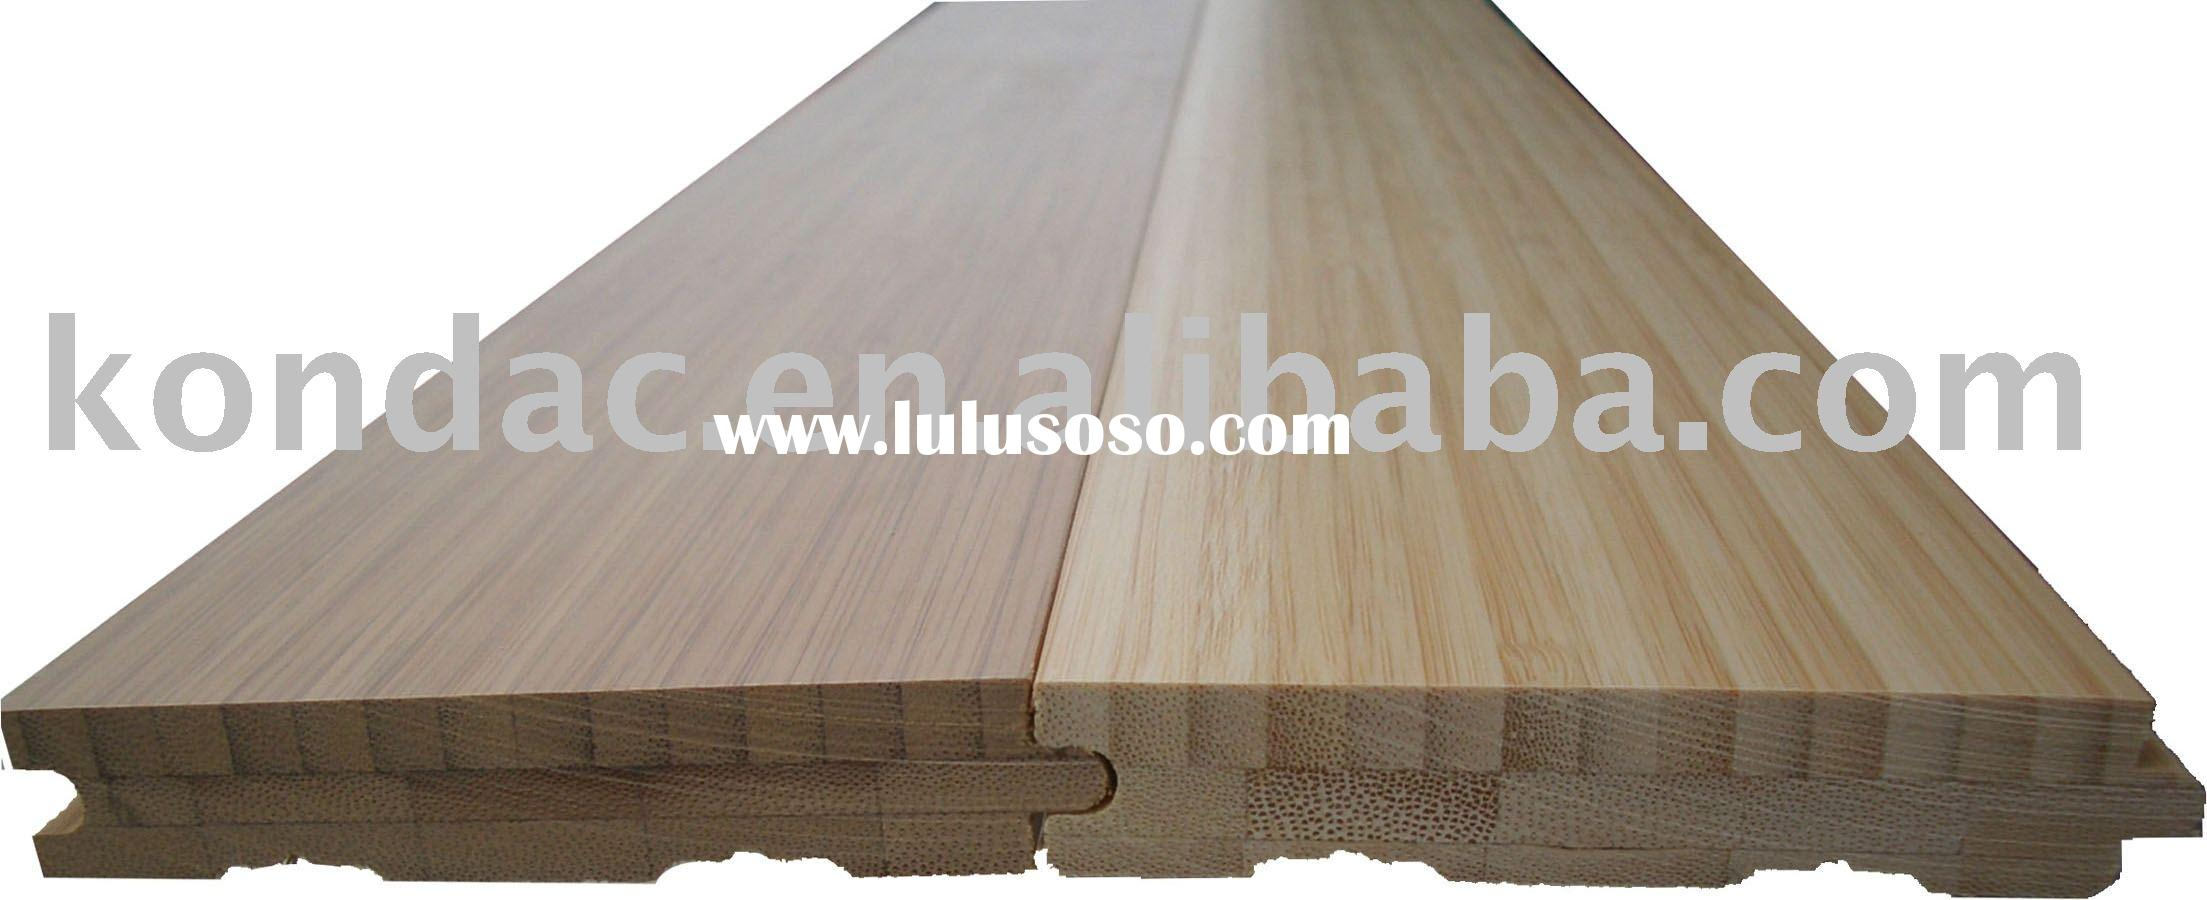 Bamboo Flooring news Golden Arowana Bamboo Flooring Costco Review